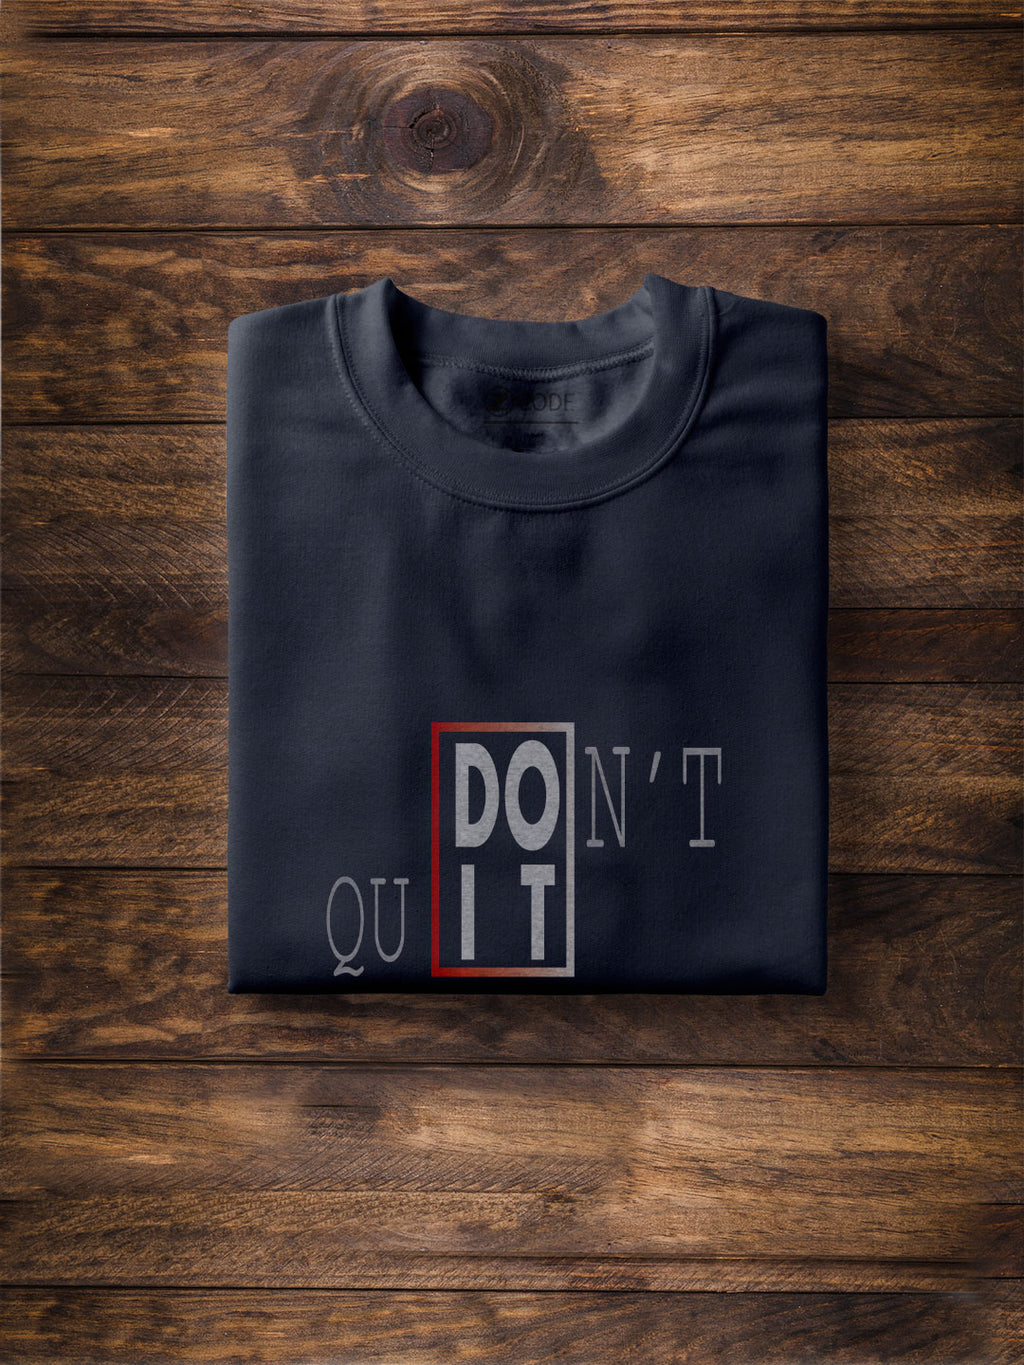 Don't Quit Printed Navy Blue T-shirt